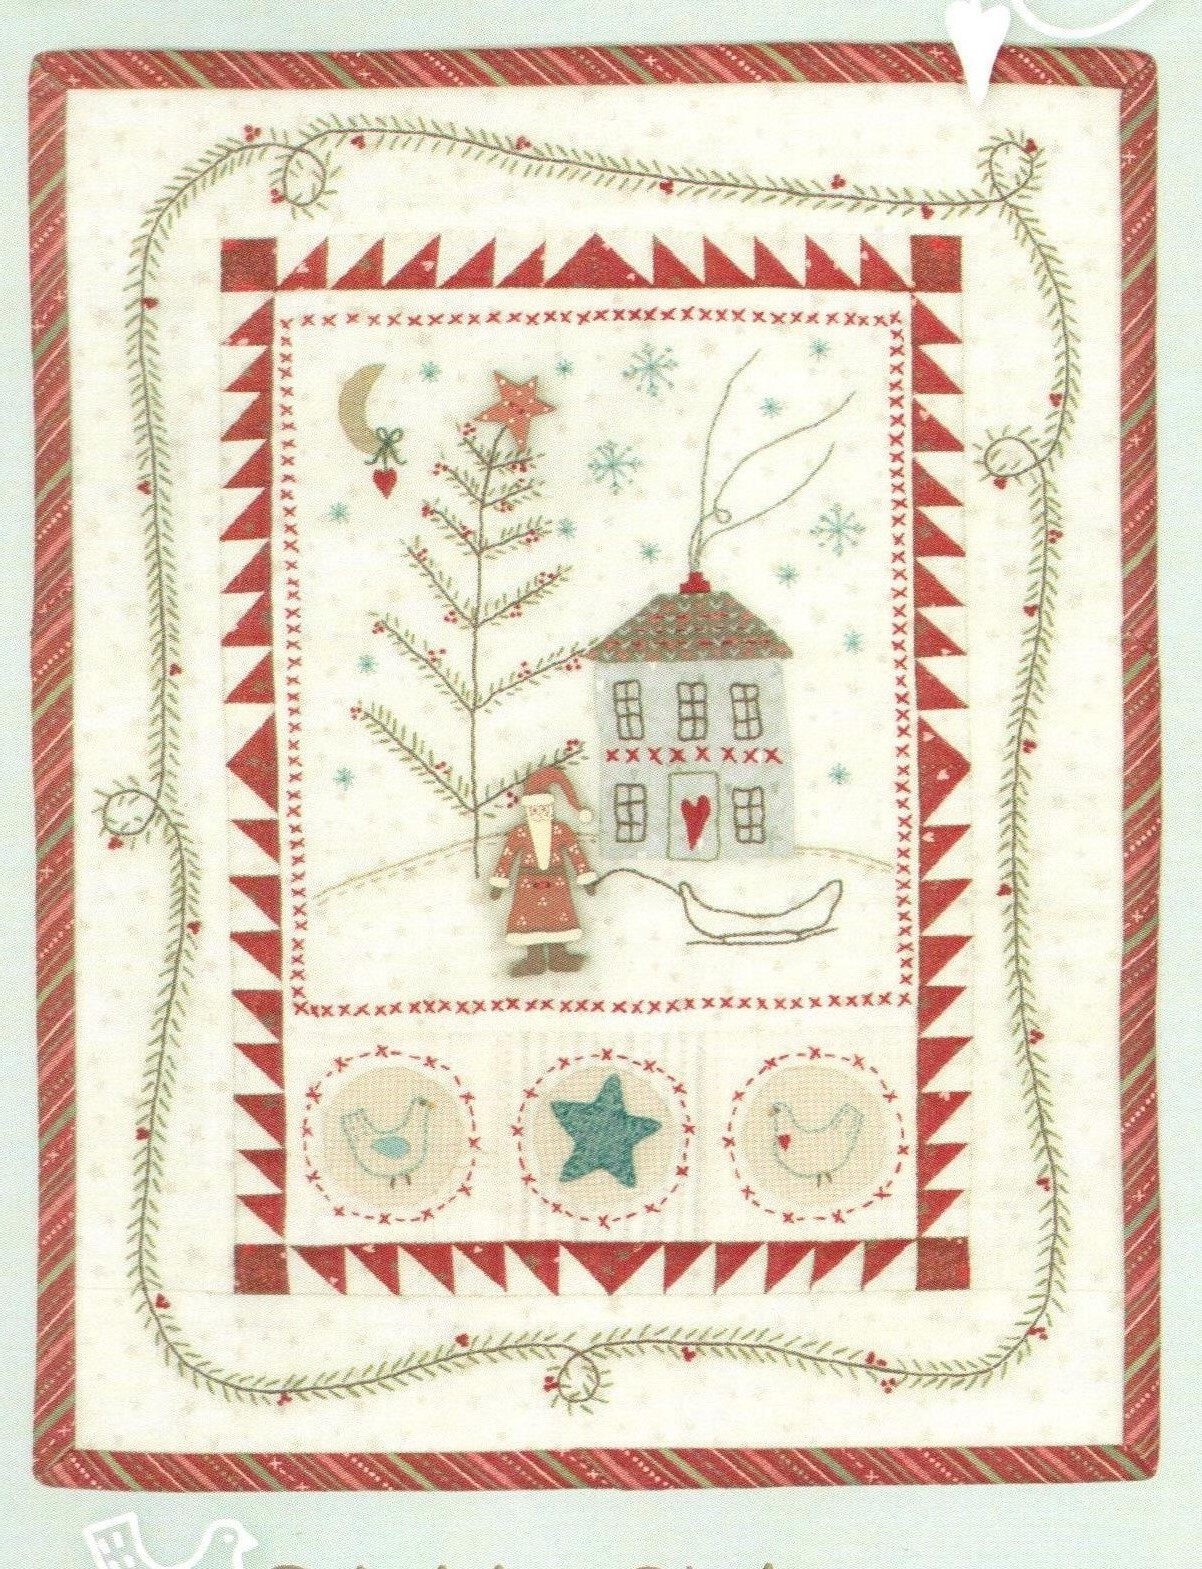 Free Christmas Embroidery Patterns Primitive Christmas Quilt And Embroidery Pattern With Hand Painted Jolly Santa Button Pack